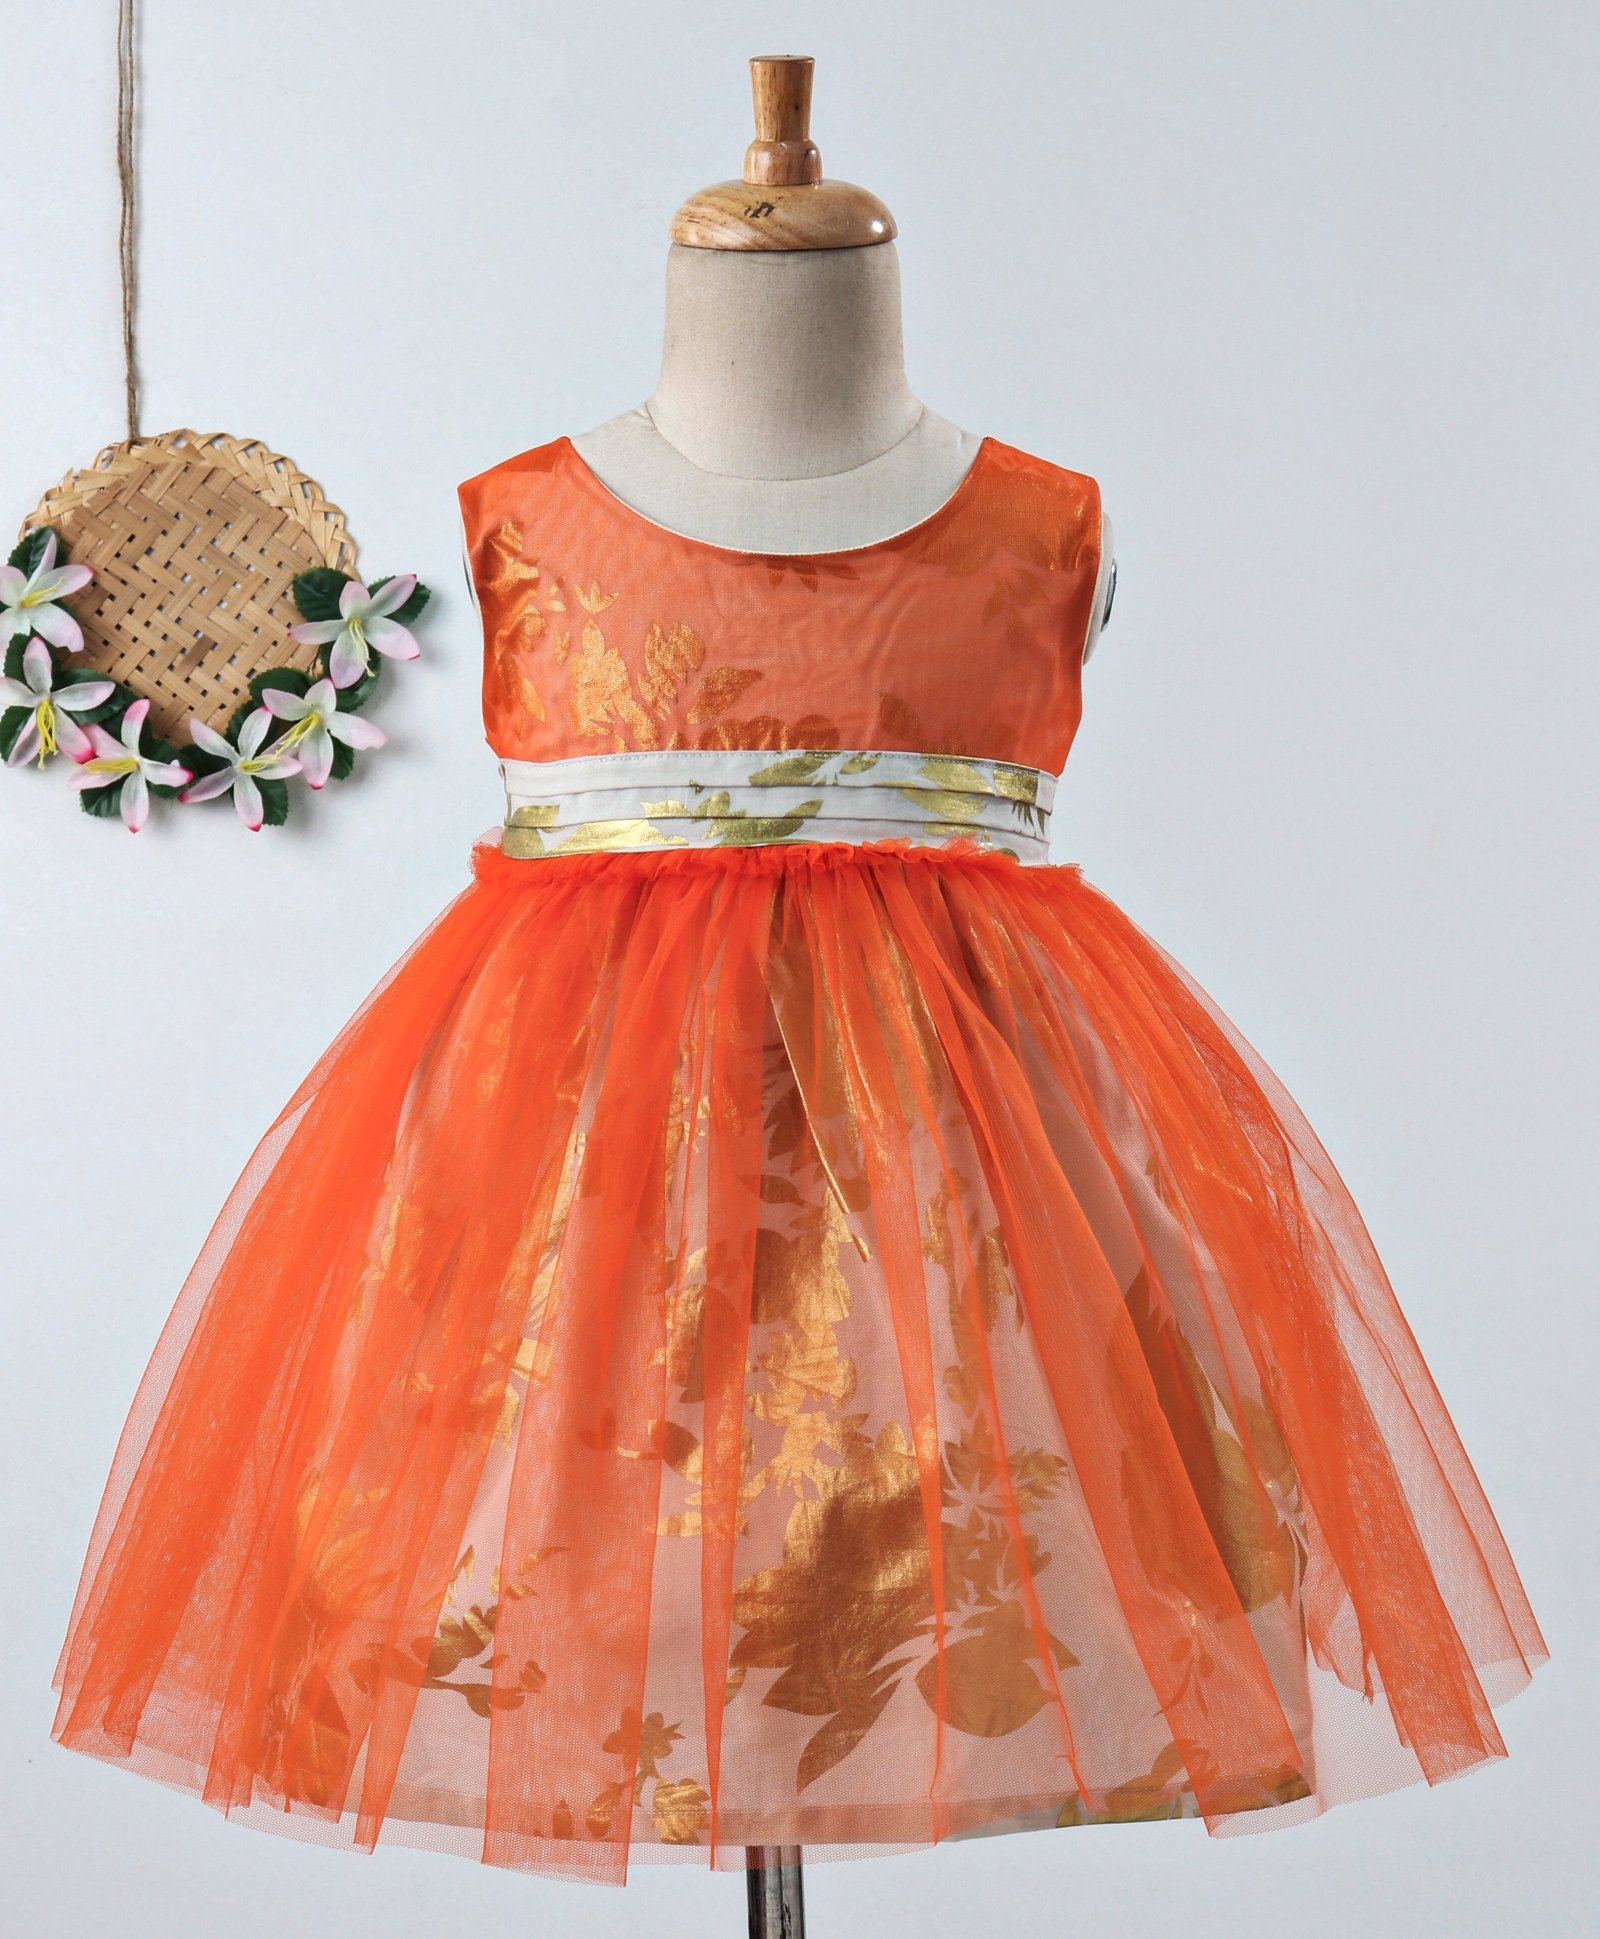 d54ddd2c801e3 Buy Many Frocks & Floral Print Sleeveless Net Dress Orange for Girls (2-3  Years) Online in India, Shop at FirstCry.com - 2549813